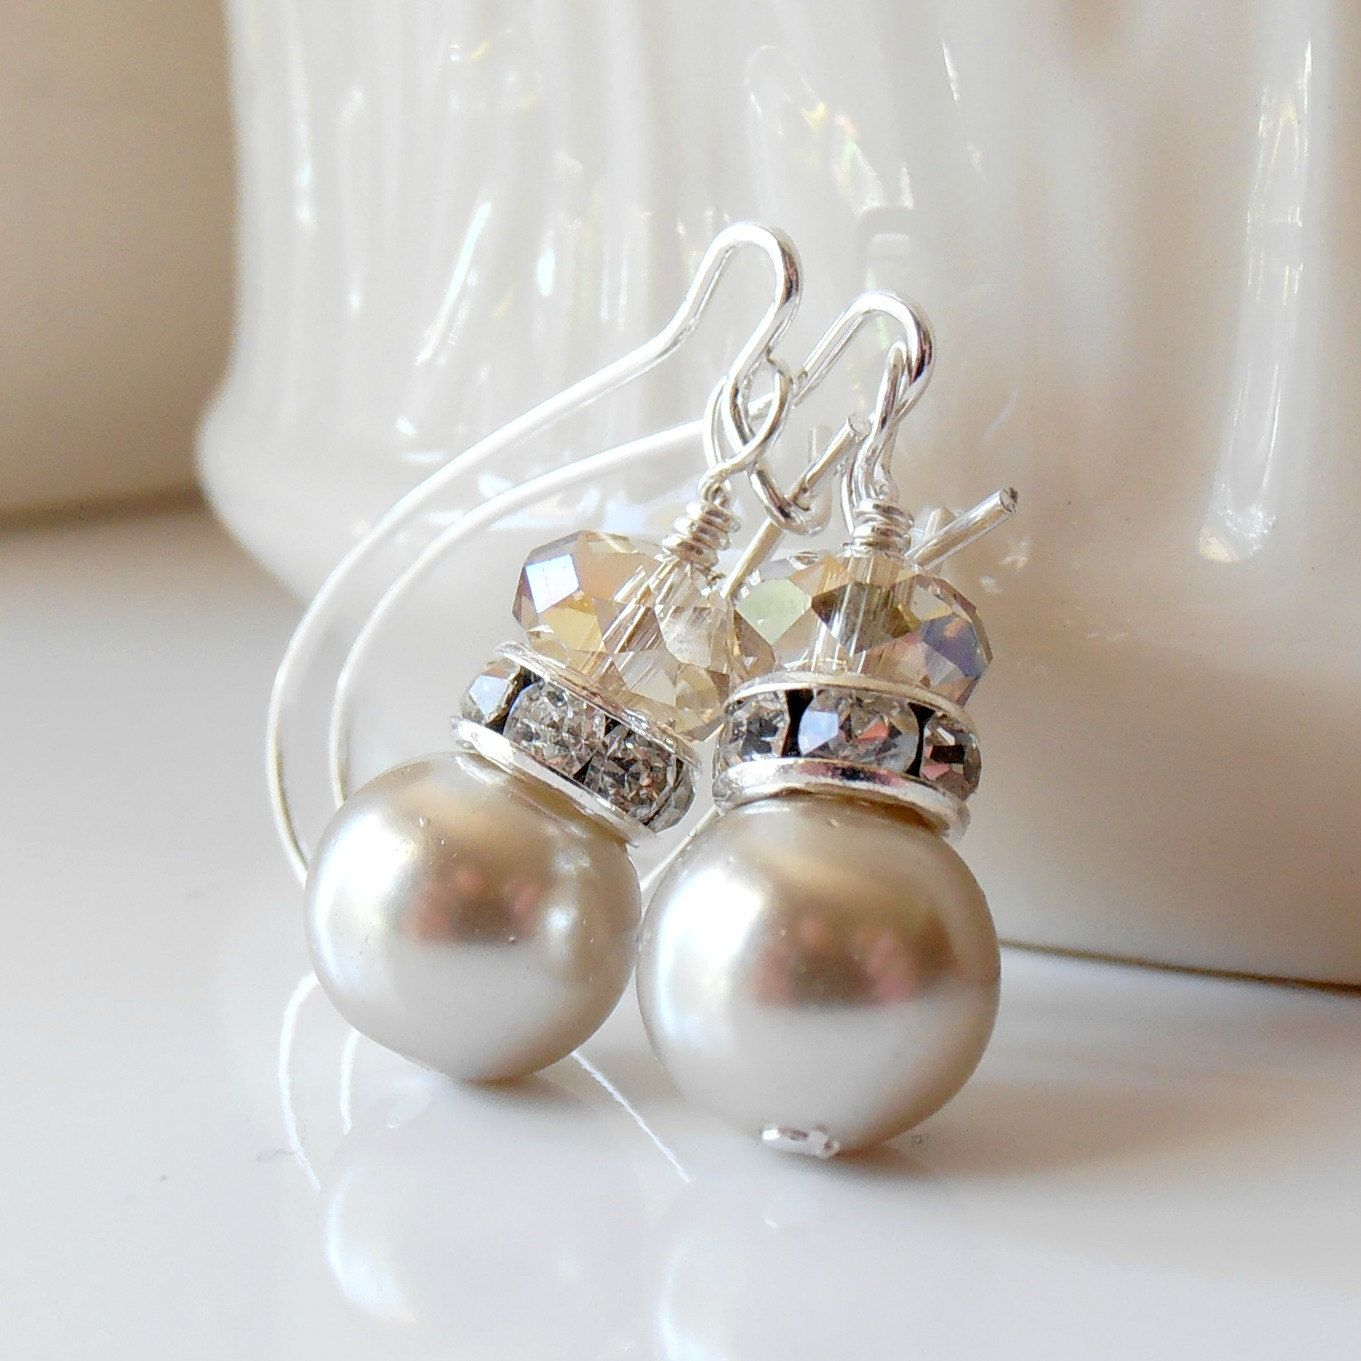 Bridesmaid Earrings, Champagne Pearl Dangles With Beige Crystals In Silver,  Beaded Handmade Wedding Jewelry